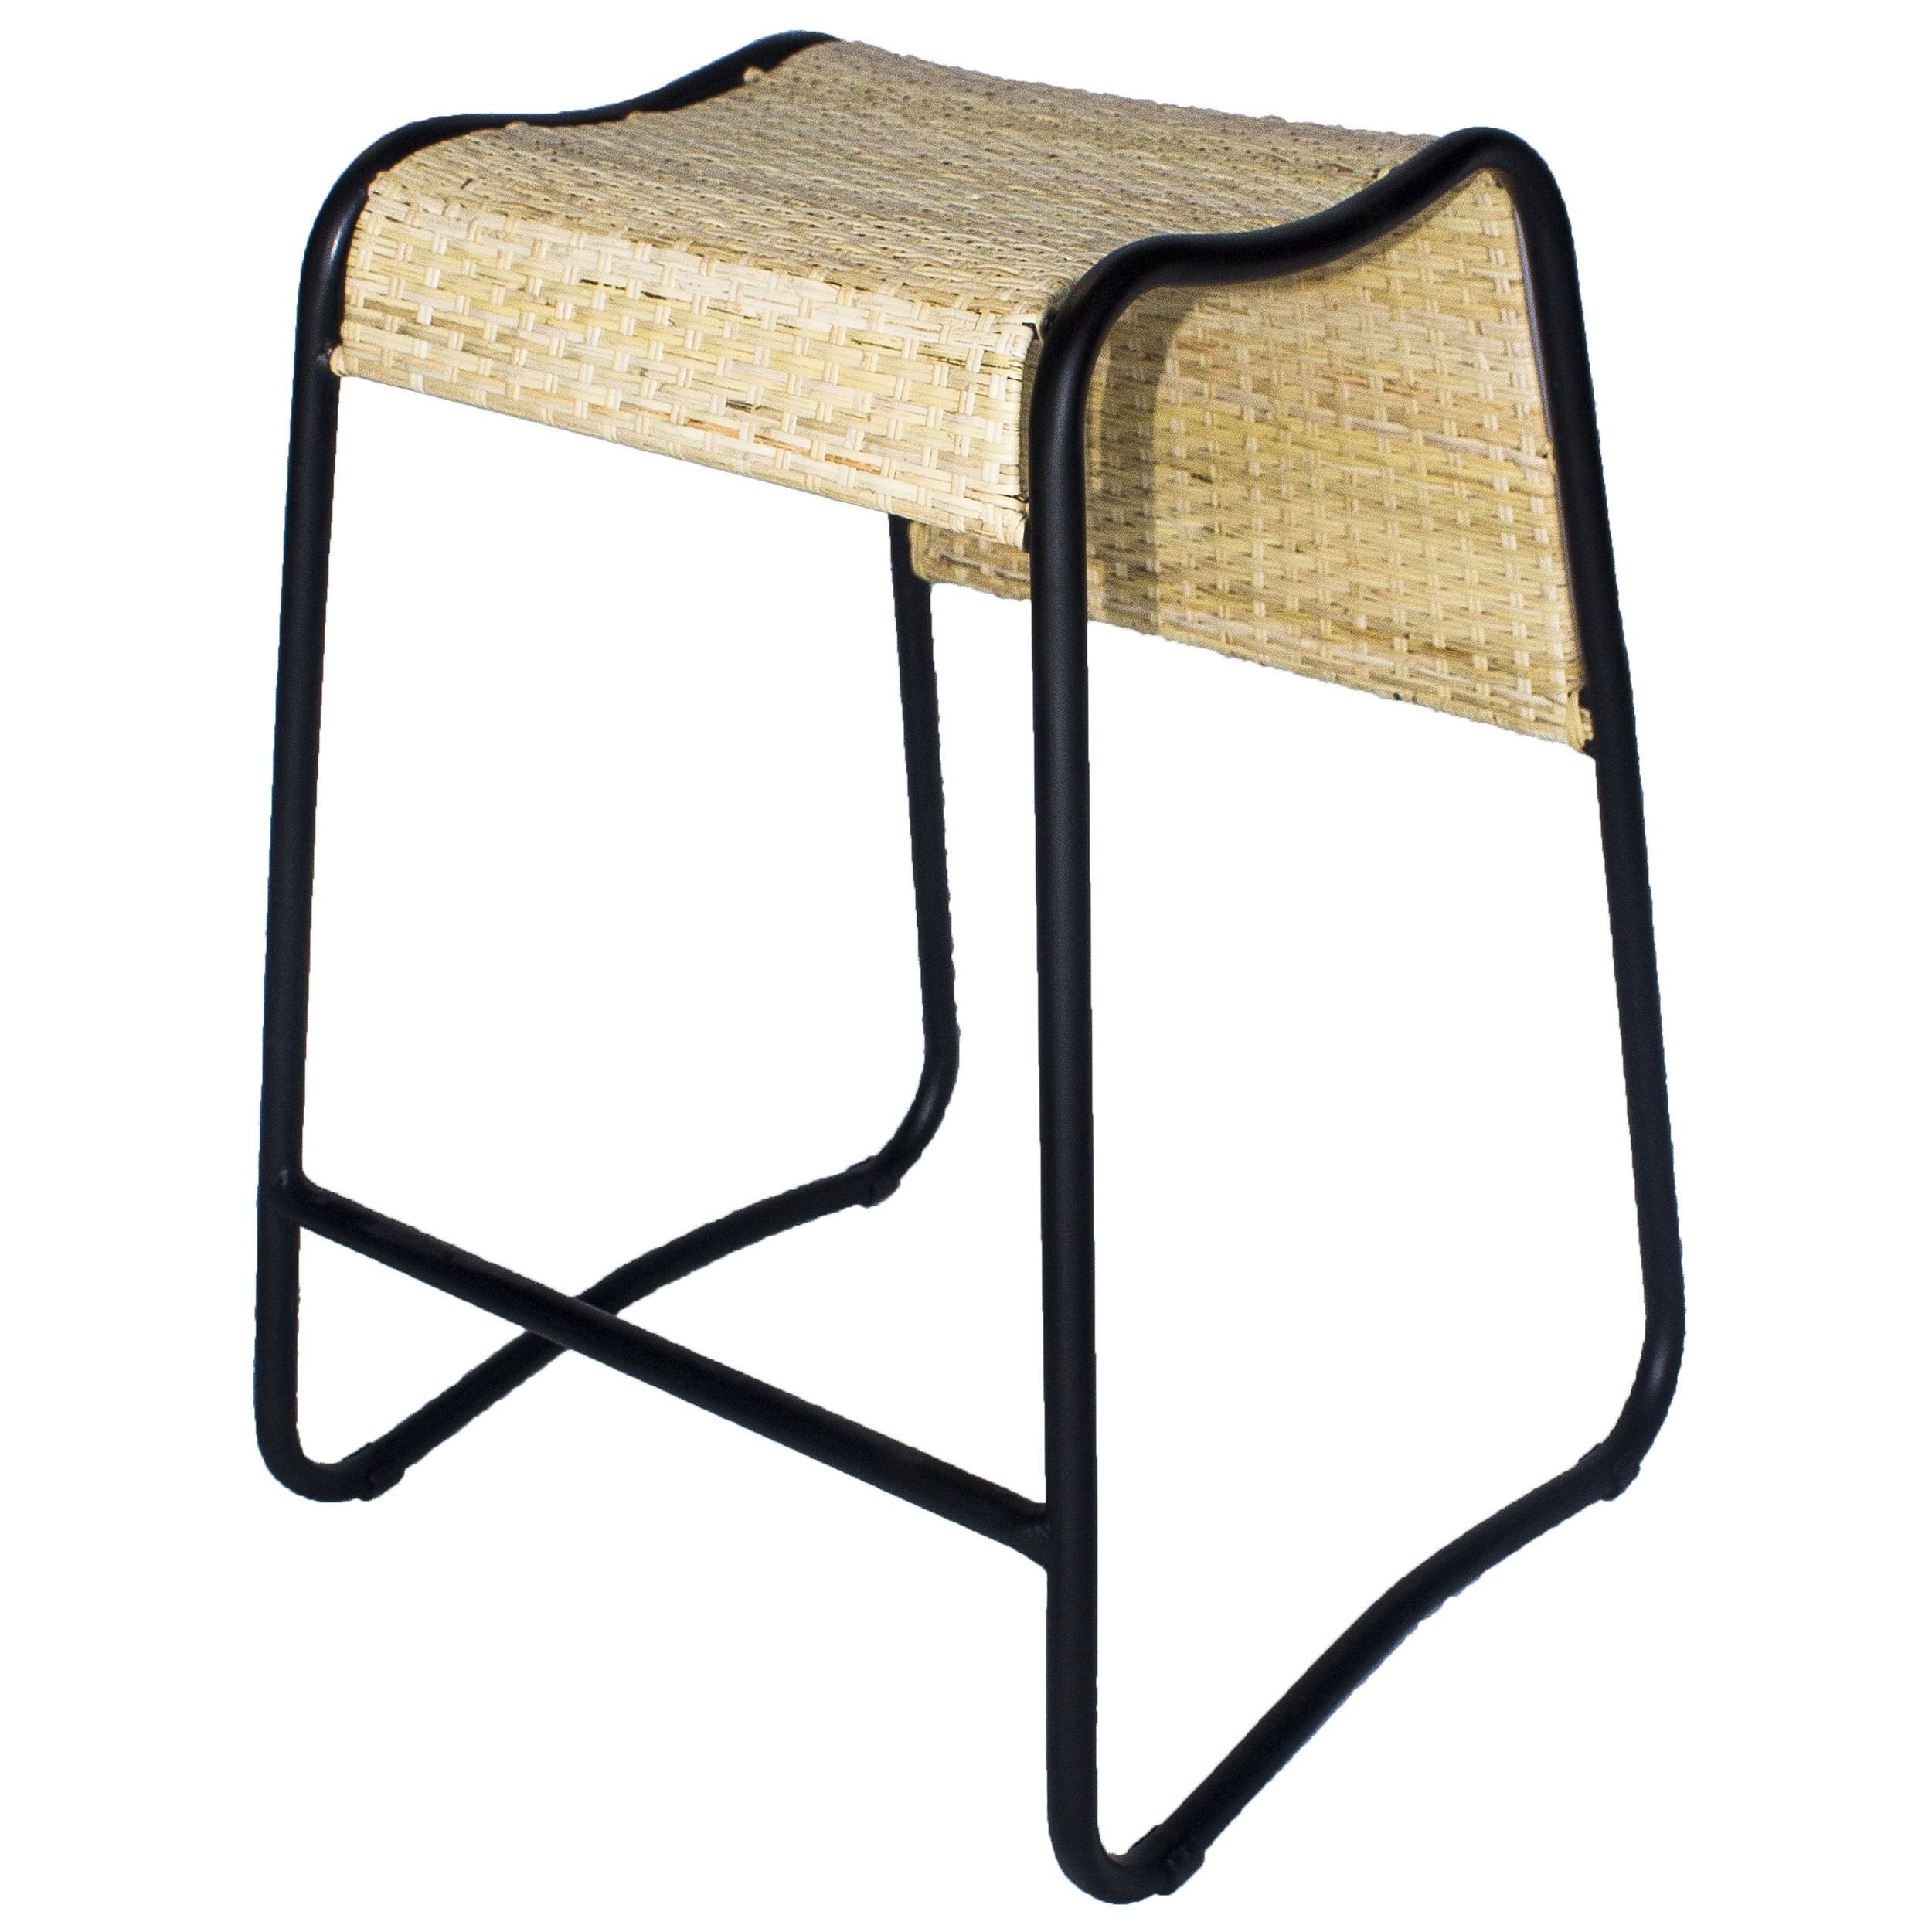 stools and rattan patio swivel inch ideas bar target counter one kitchen your imports stool wicker furniture pier height for